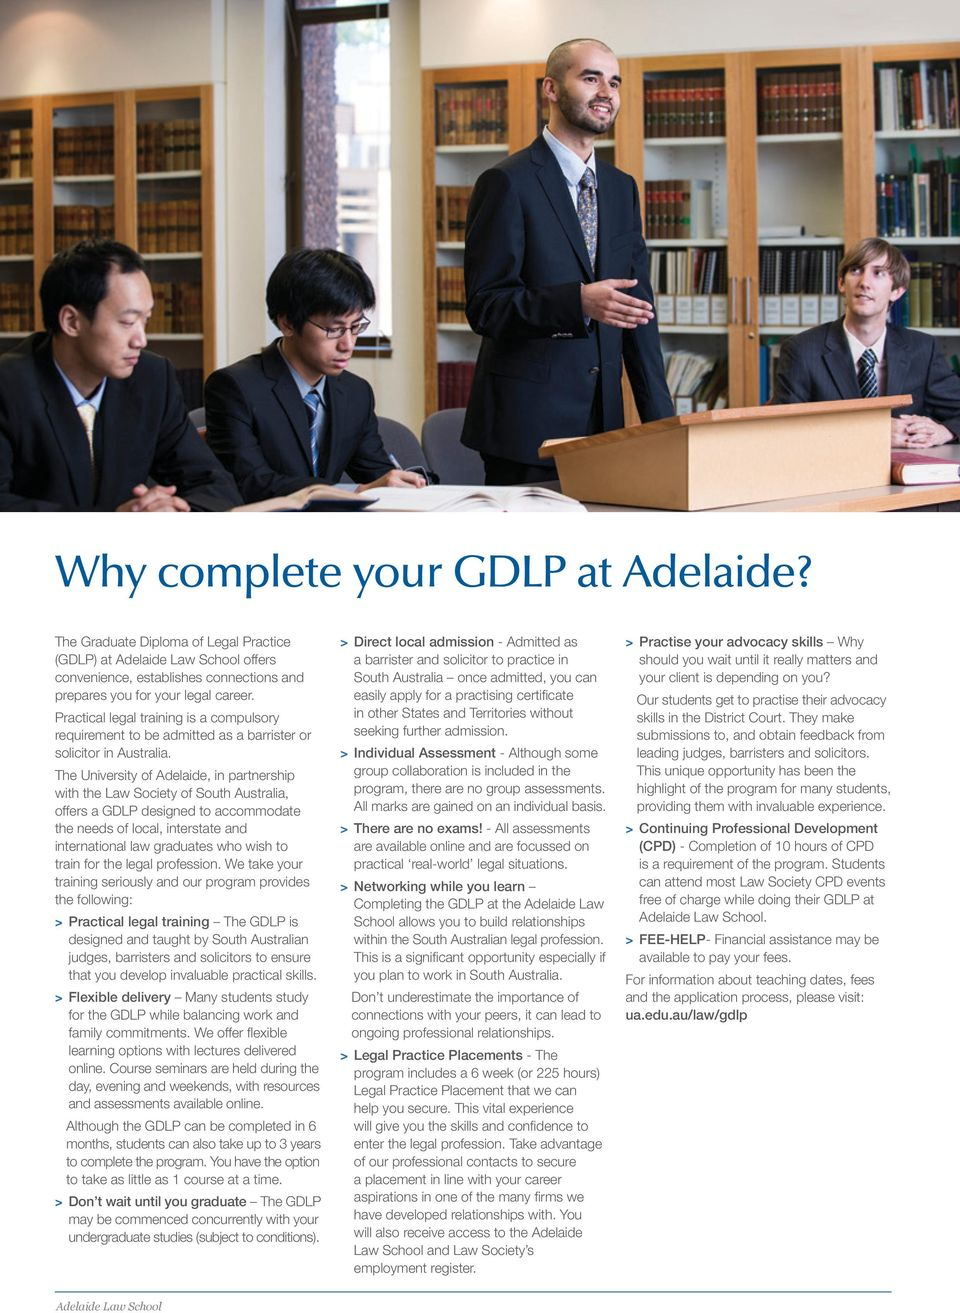 The University of Adelaide, in partnership with the Law Society of South Australia, offers a GDLP designed to accommodate the needs of local, interstate and international law graduates who wish to